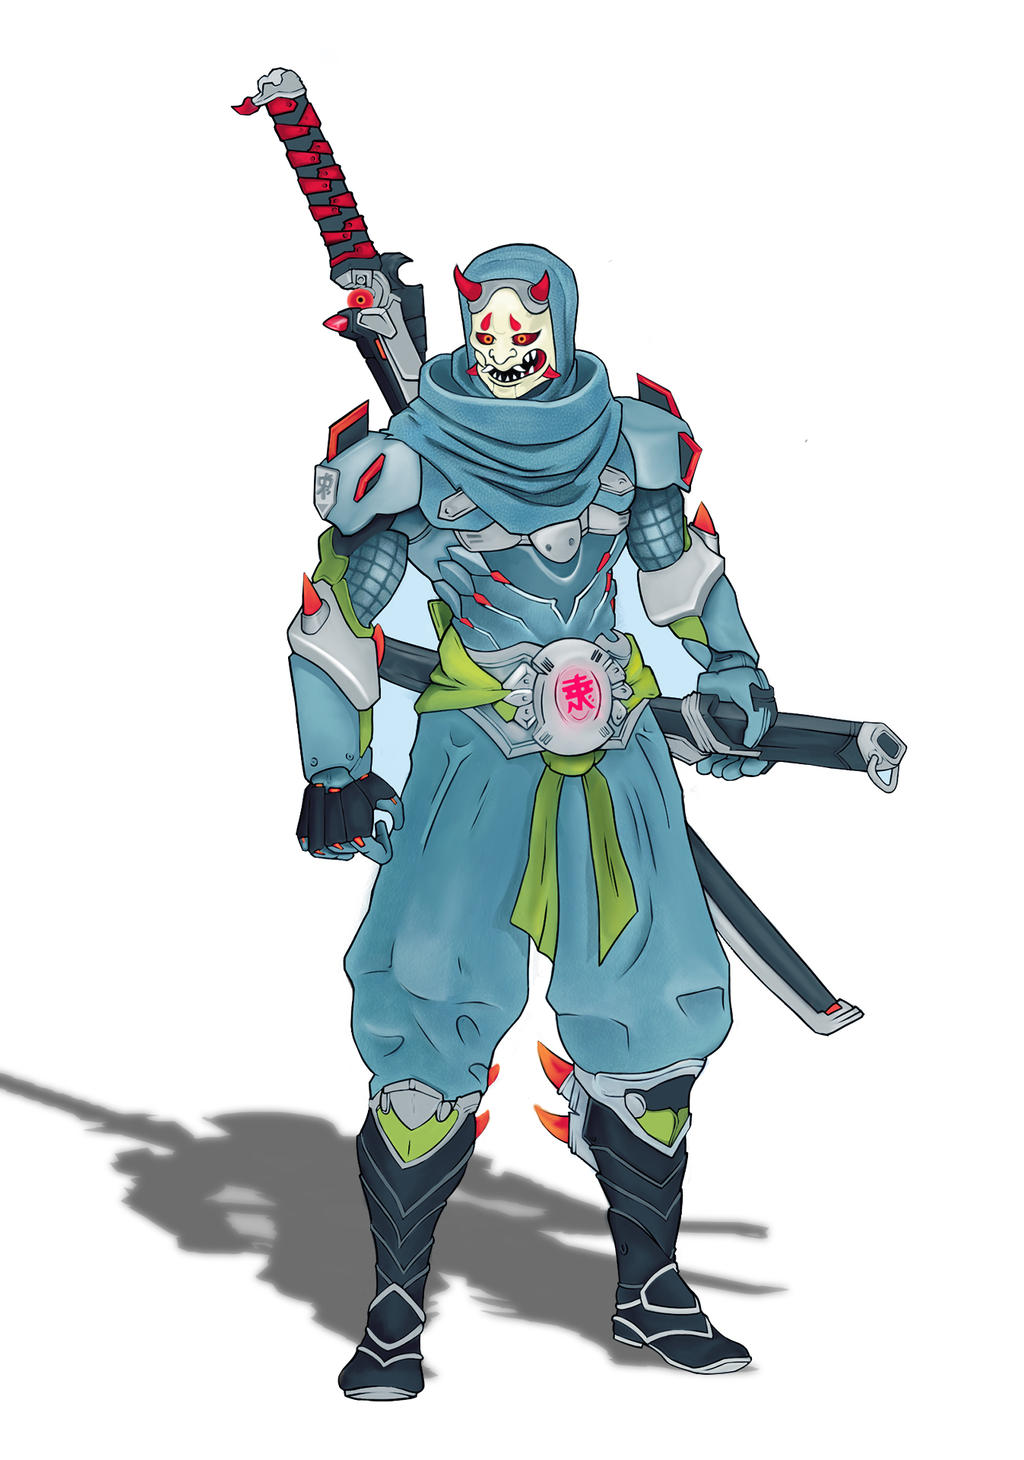 Genji Heroes Of The Storm Skin Overwacth By Oksgraphism On Deviantart And/or just have a dshield. deviantart